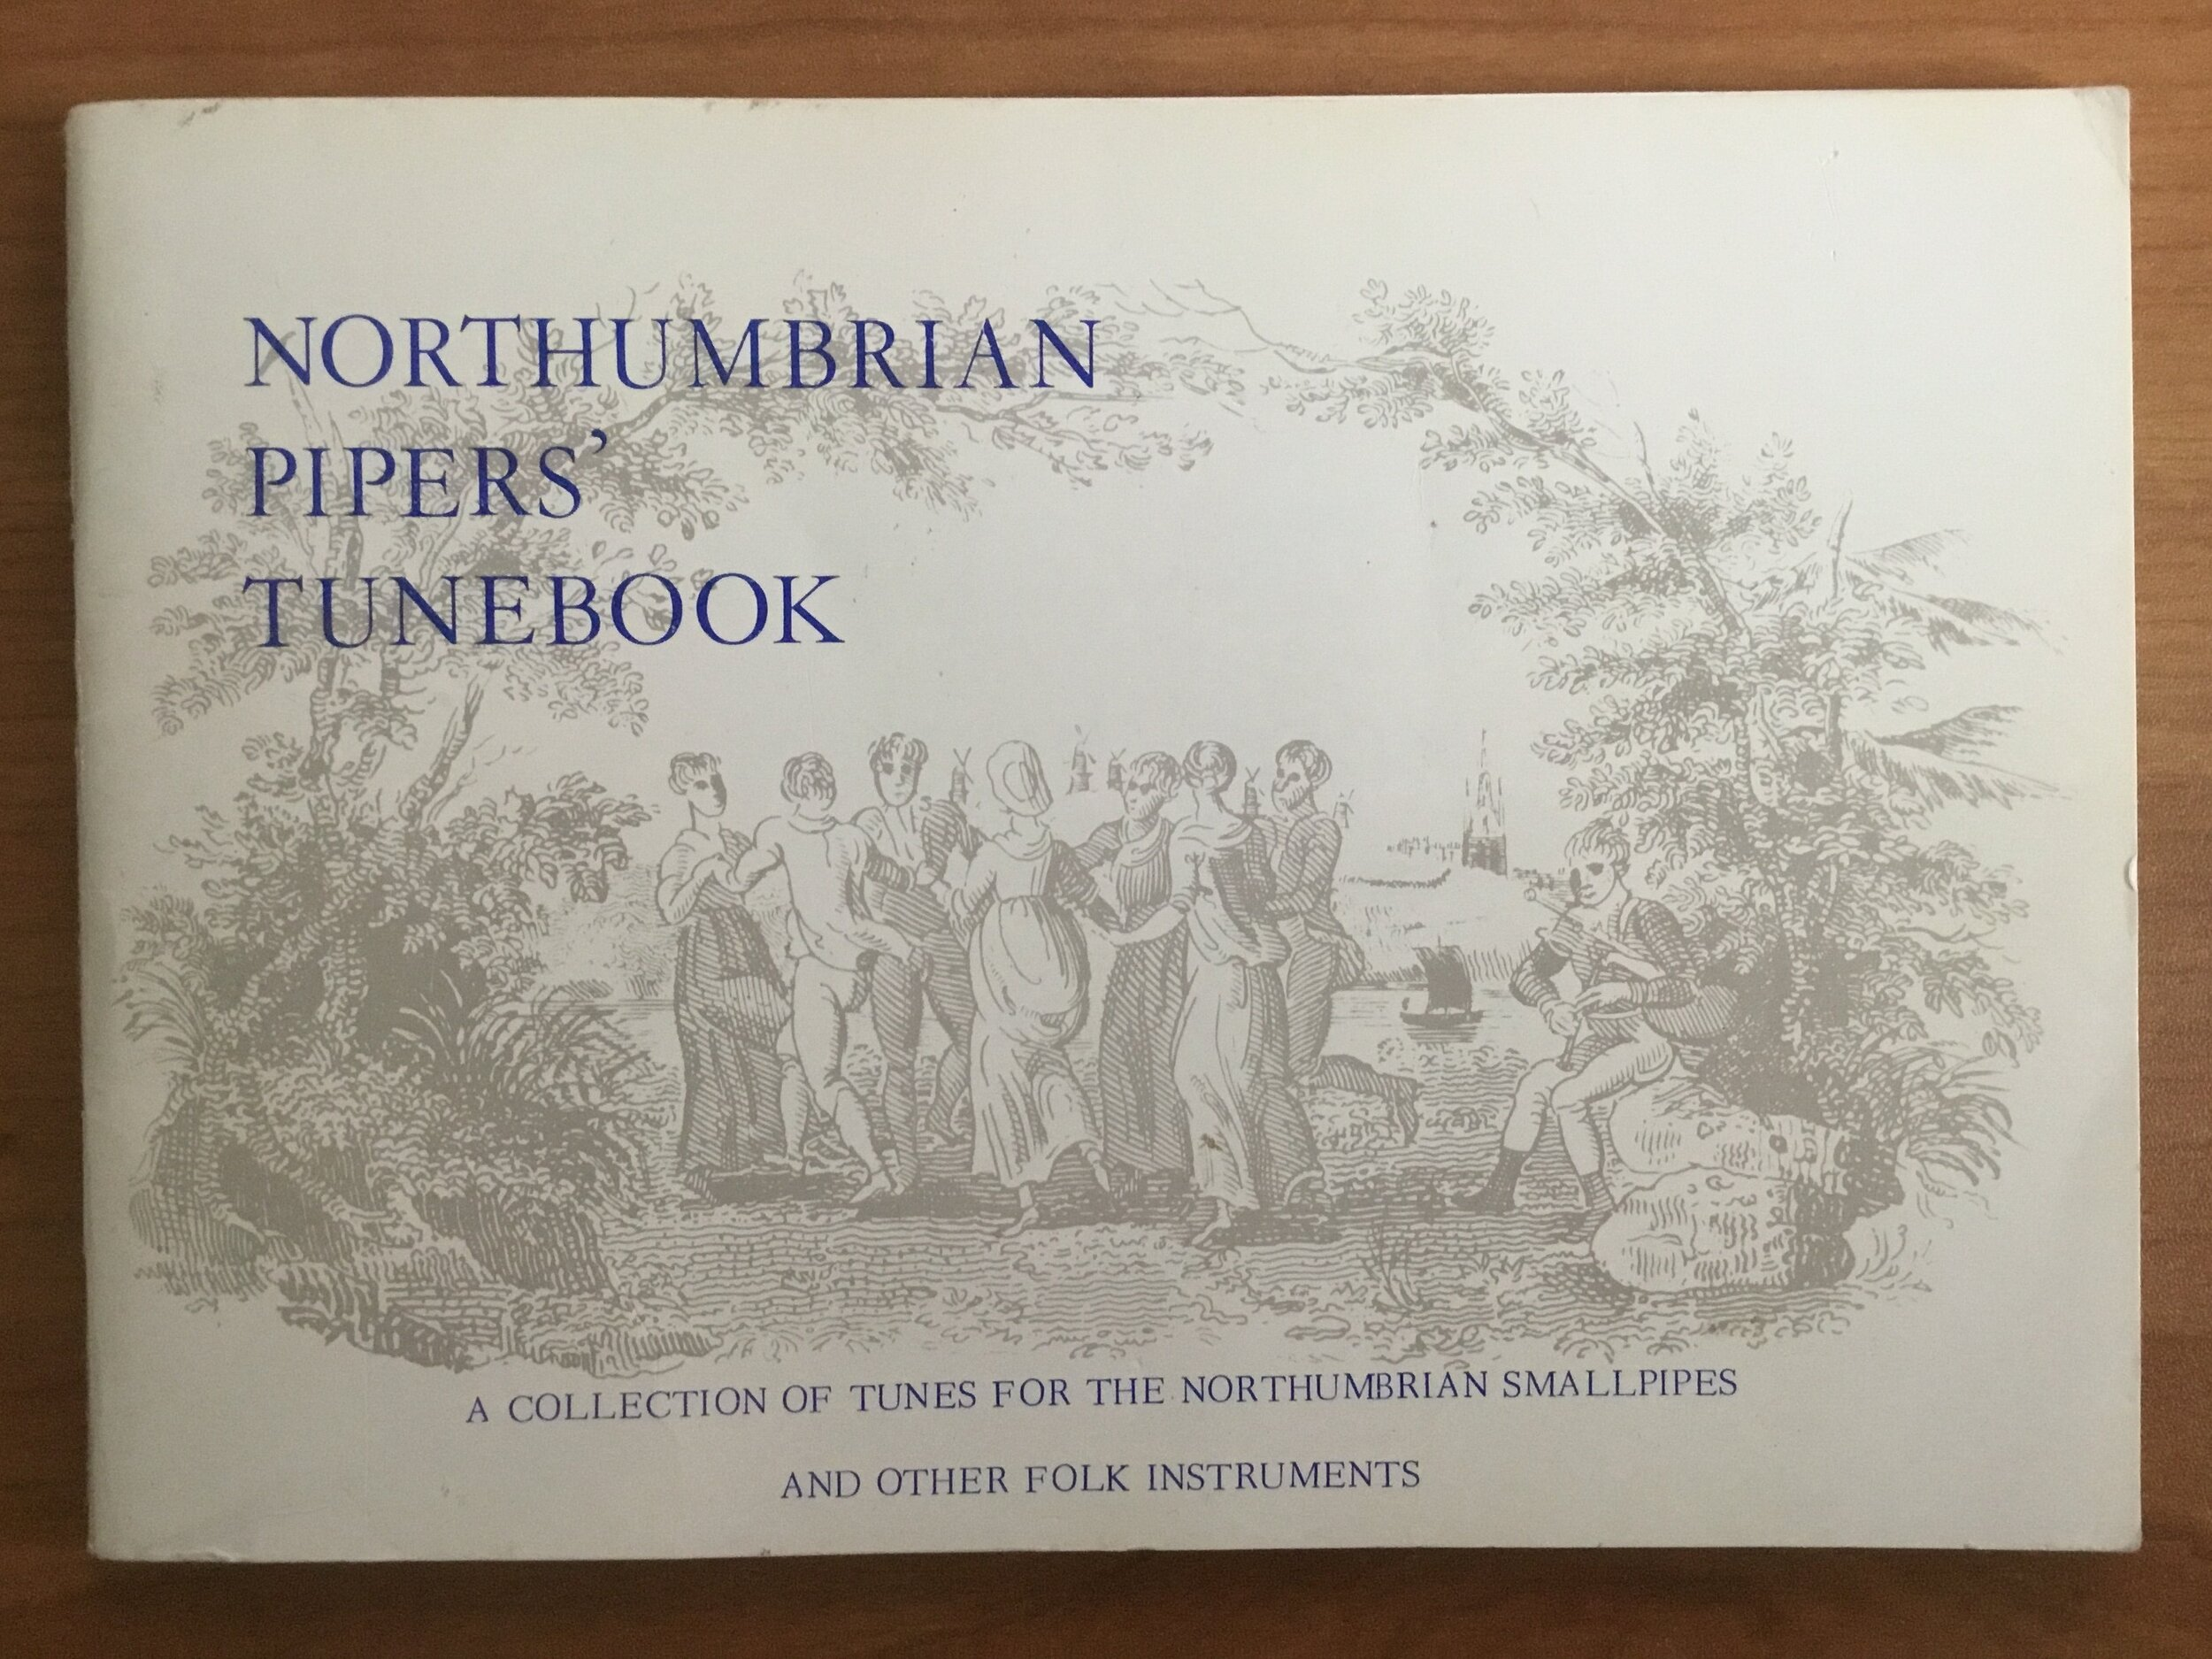 Northumbrian Pipers' Tune Book - www.northumbrianpipes.com